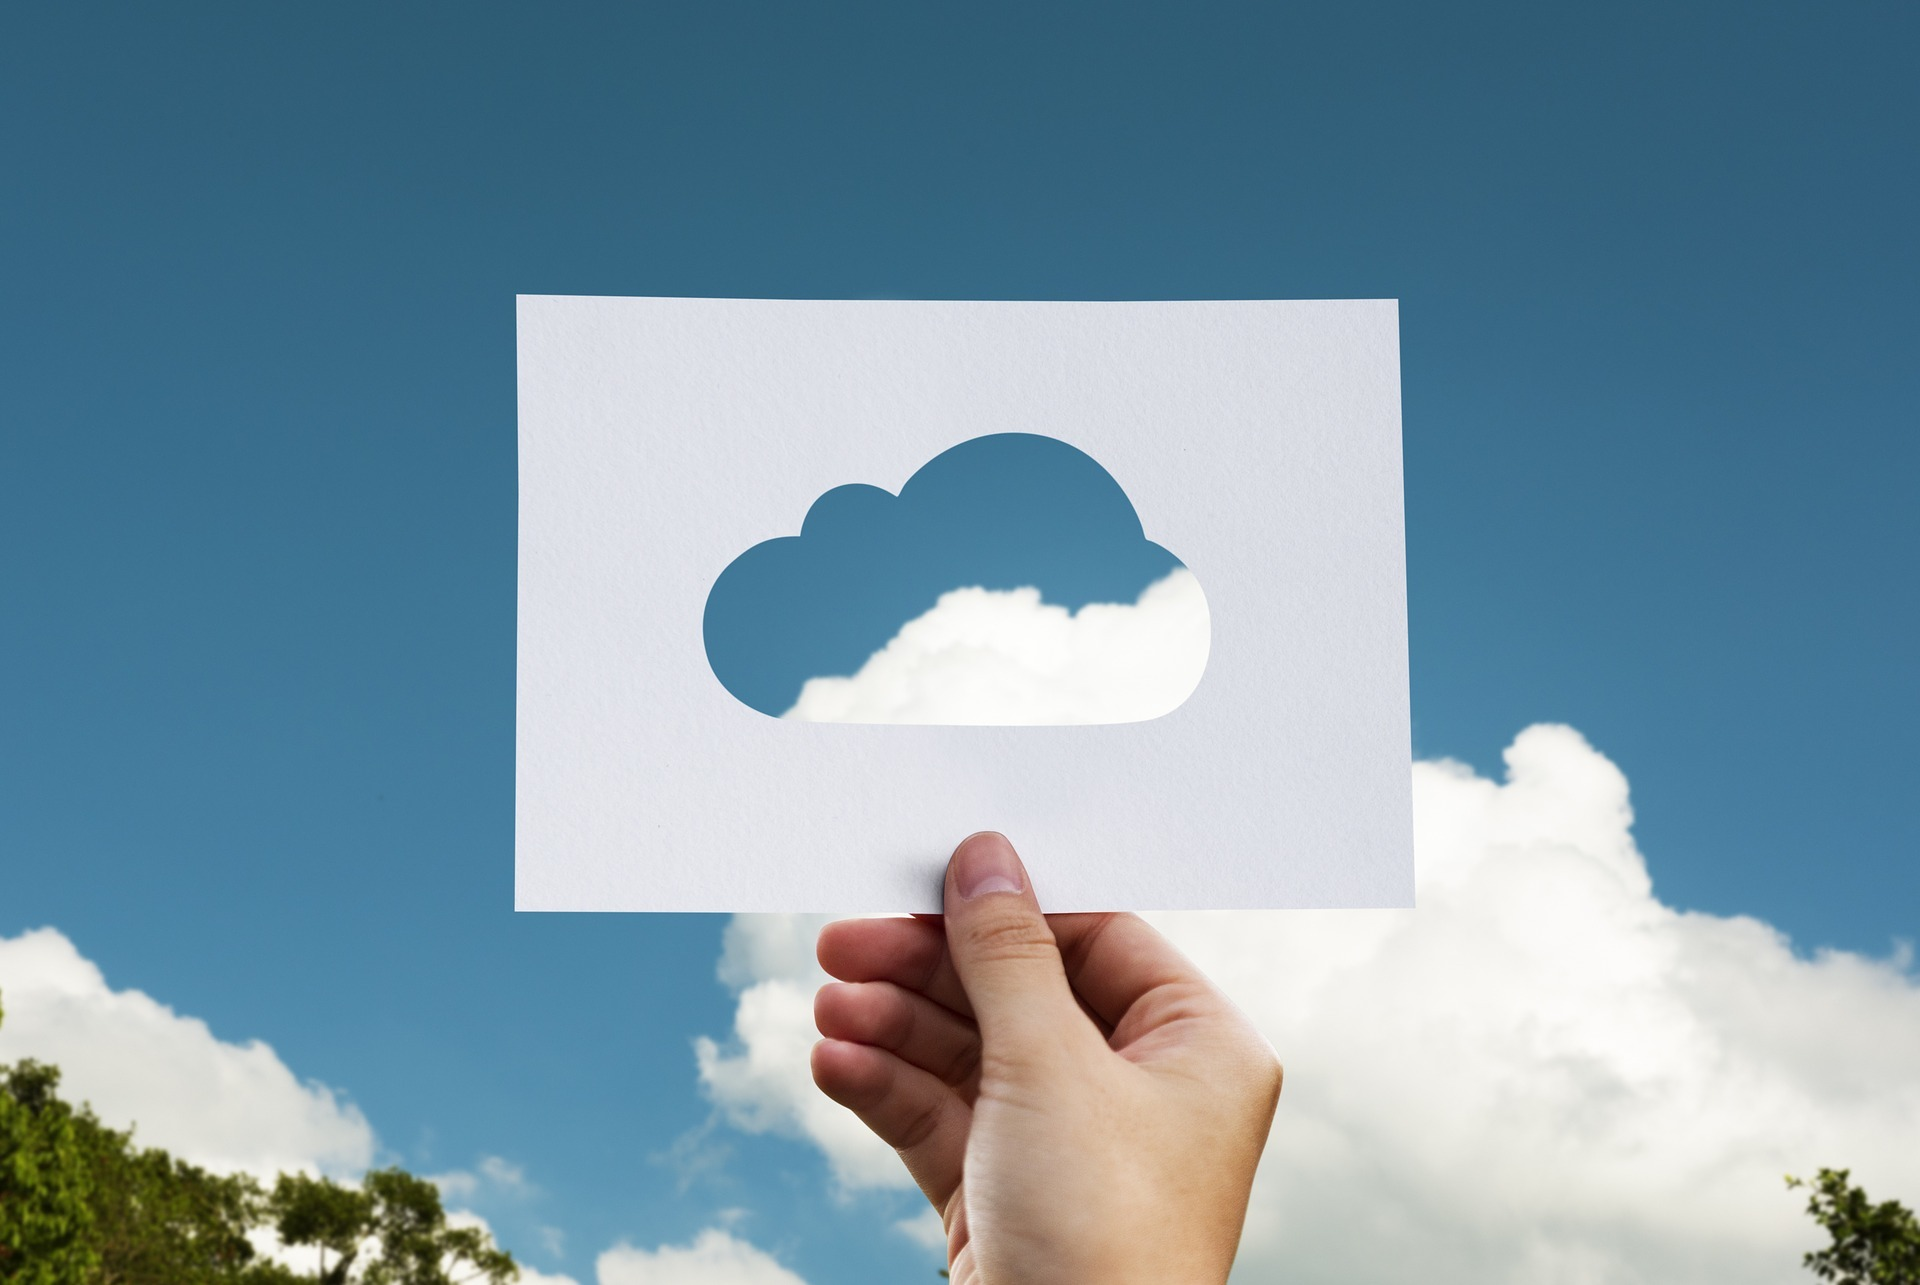 A hand holds a paper up to the sky with a cloud shape cut out.